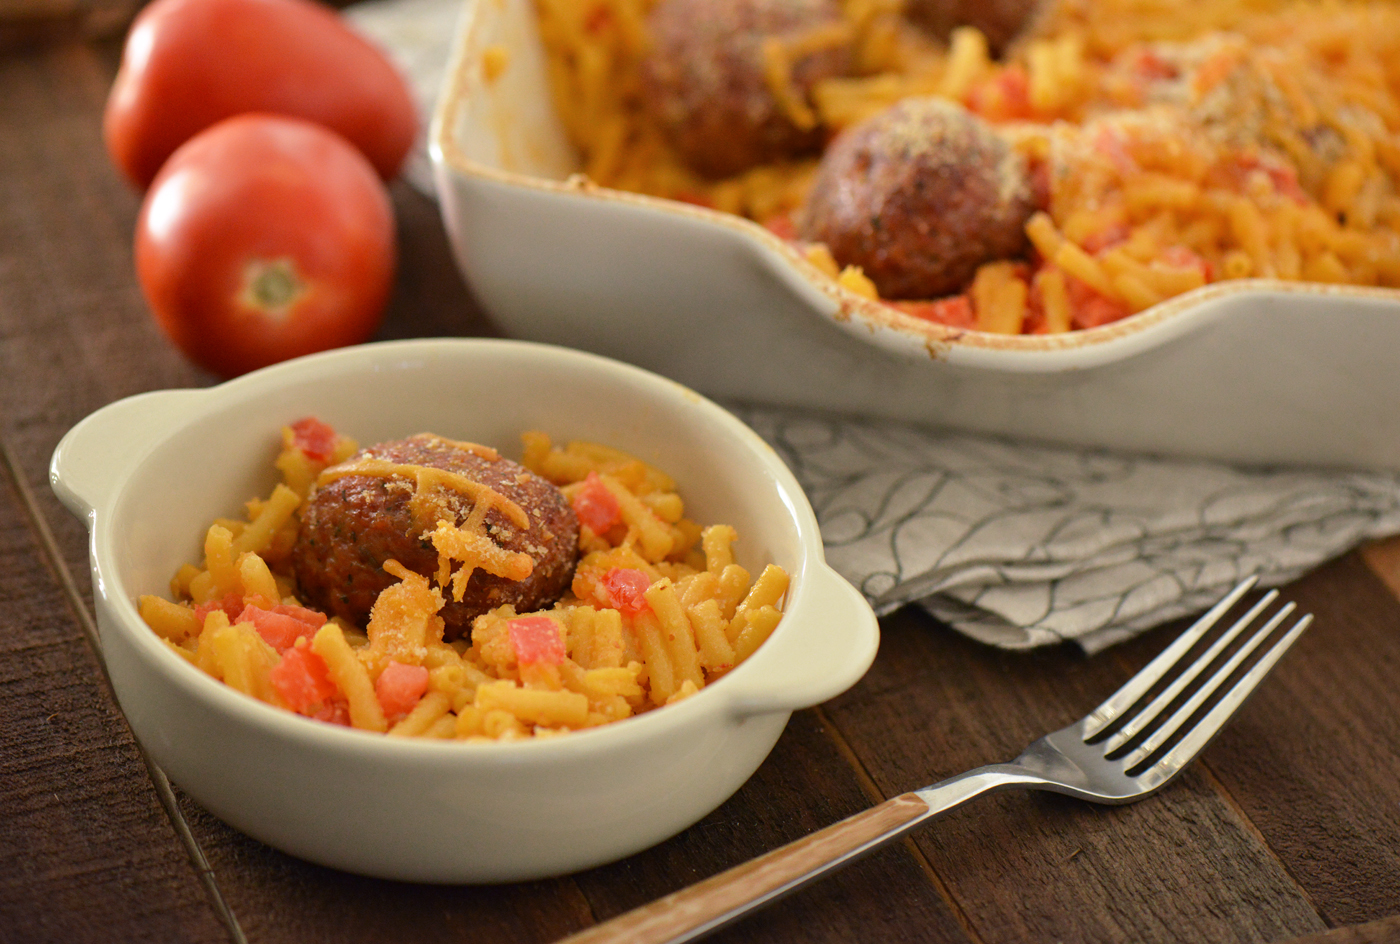 Meatballs Mac n cheese